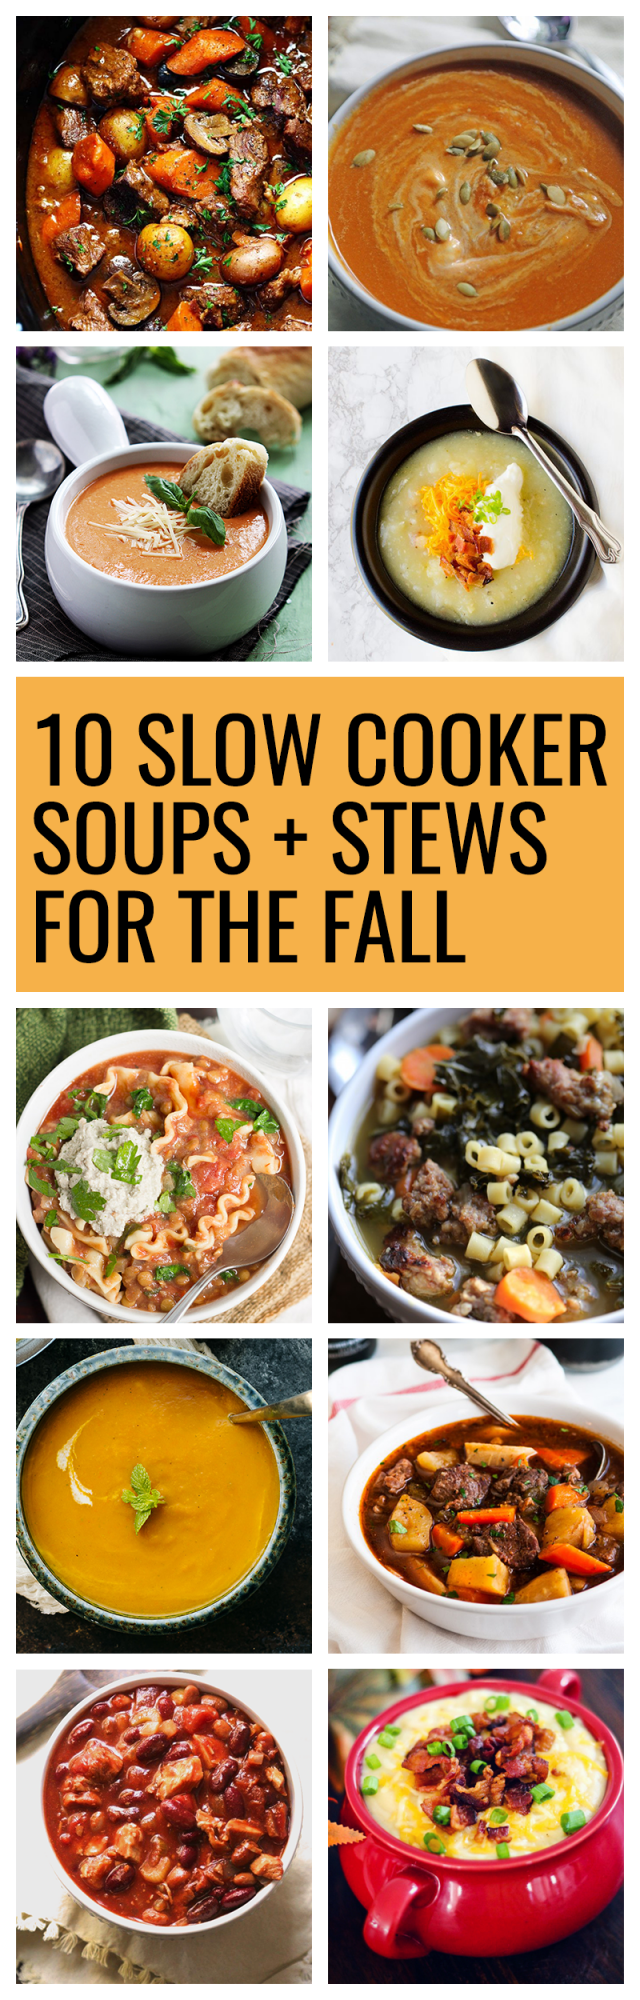 One of my favorite parts about fall is cozying up with a warm bowl of soup or stew. I love to make soups and stews in the Crockpot slow cooker during the fall.